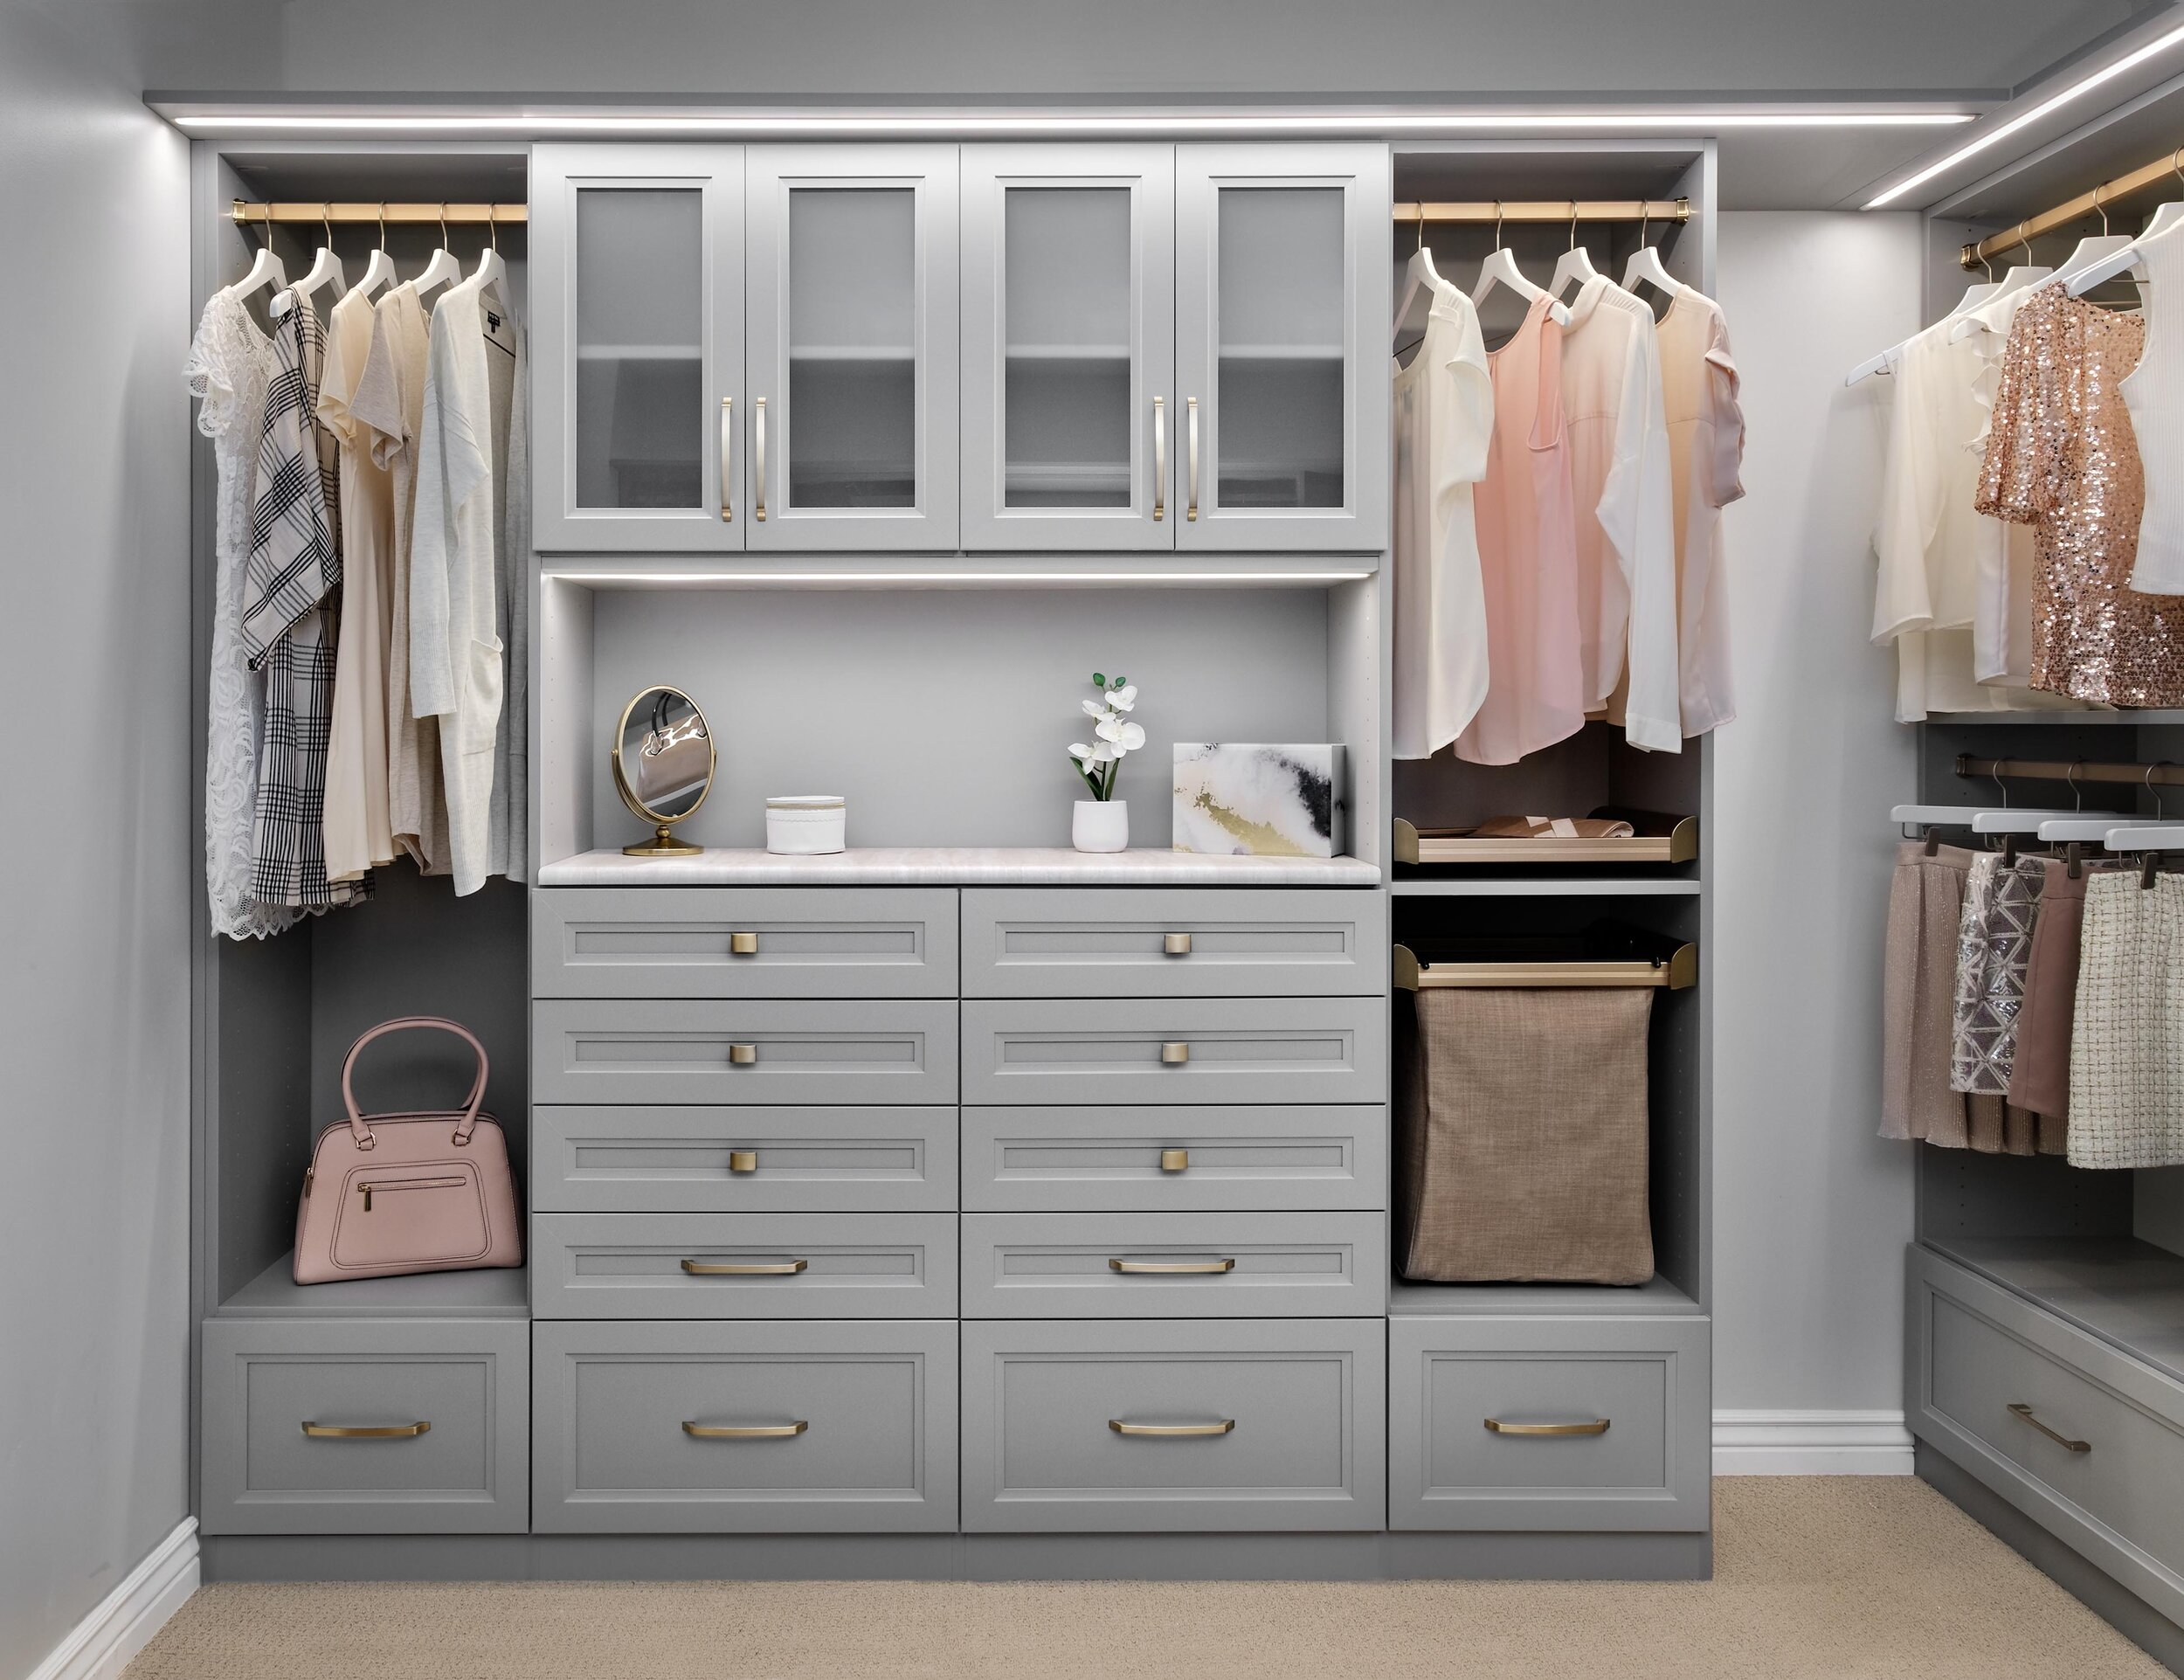 Closet lighting solutions by Closets of Tulsa transform the way you experience and use your closet.  Call now  for your FREE consultation and 3-D closet design:  918.609.0214